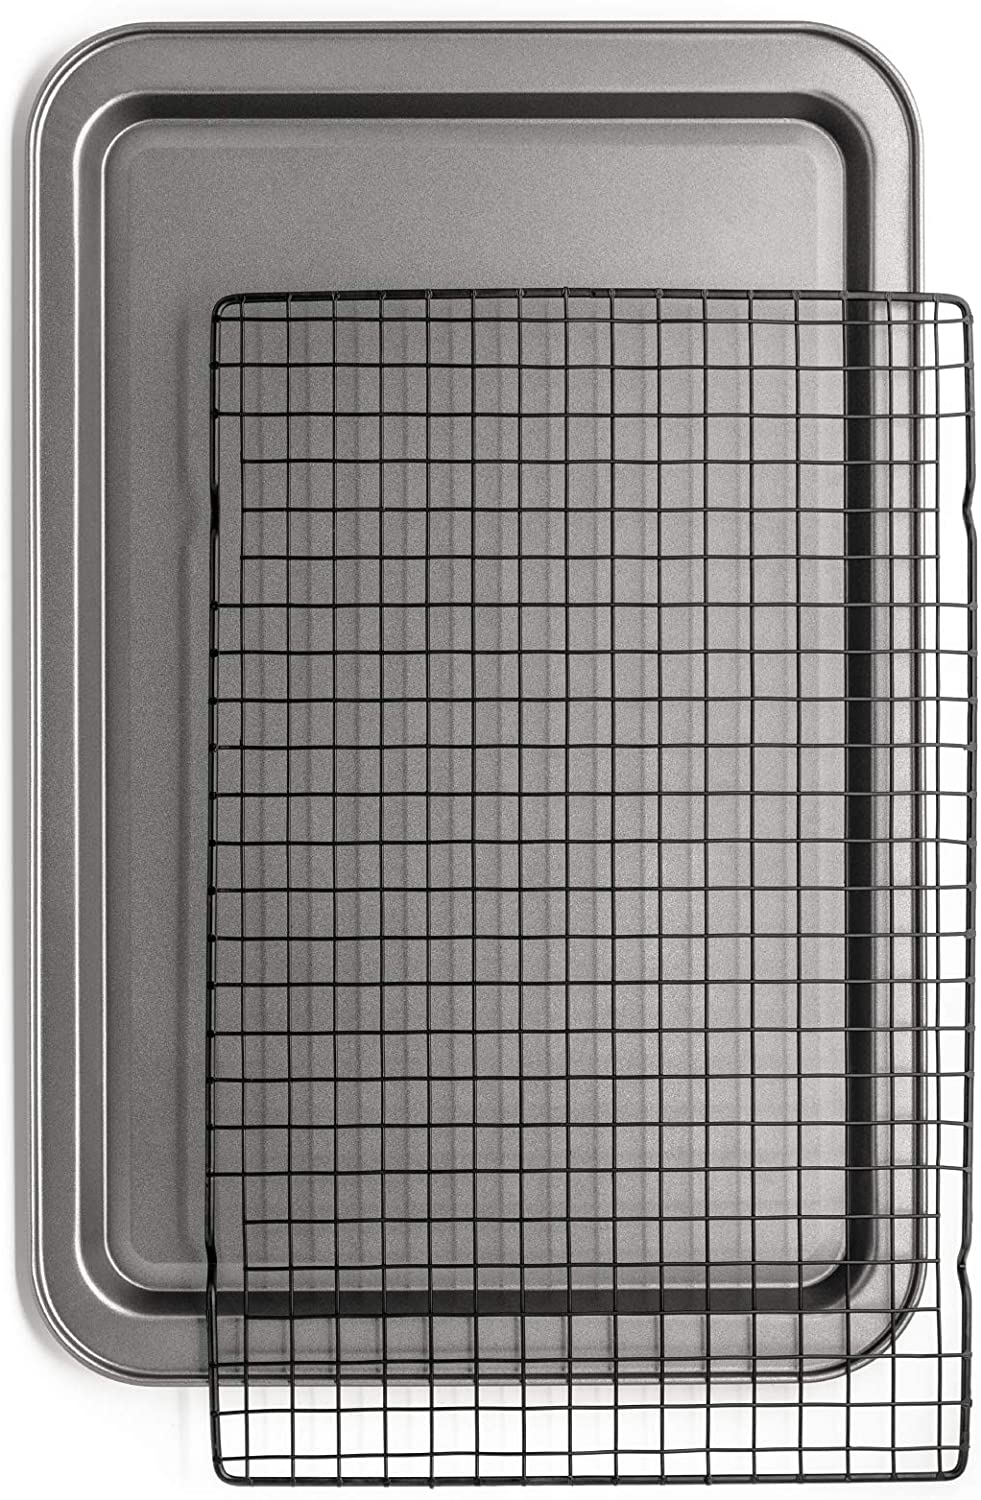 Chef Pomodoro Non-Stick Baking Sheet and Cooling Rack Set , 2-Piece, Carbon Steel Cookie Sheet, Bacon Rack, Oven Safe (18.5 x 12.2